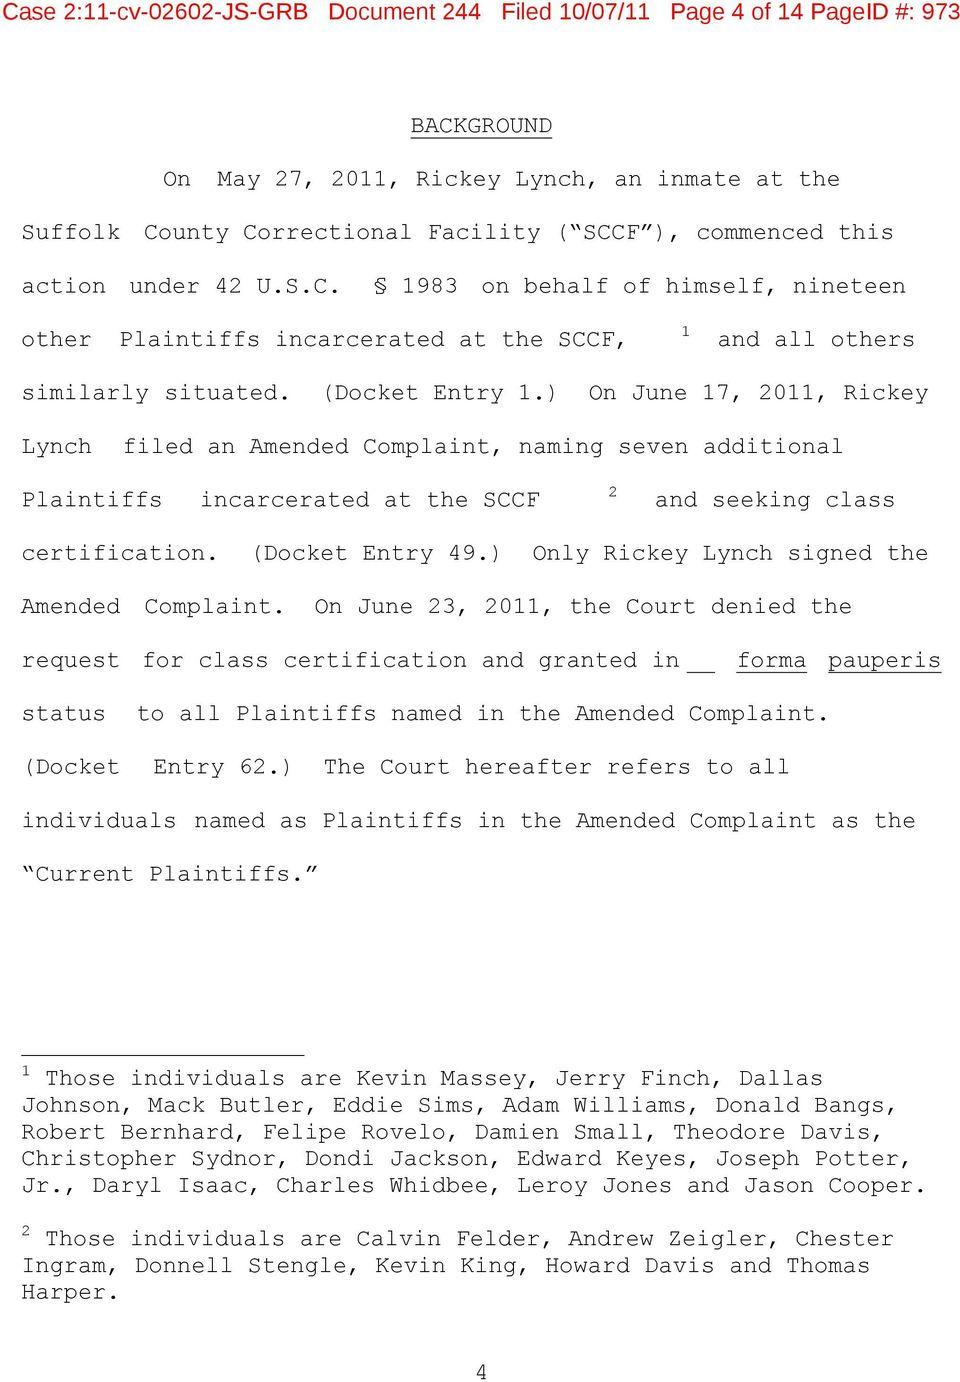 Case 2:11-cv JS-GRB Document 244 Filed 10/07/11 Page 1 of 14